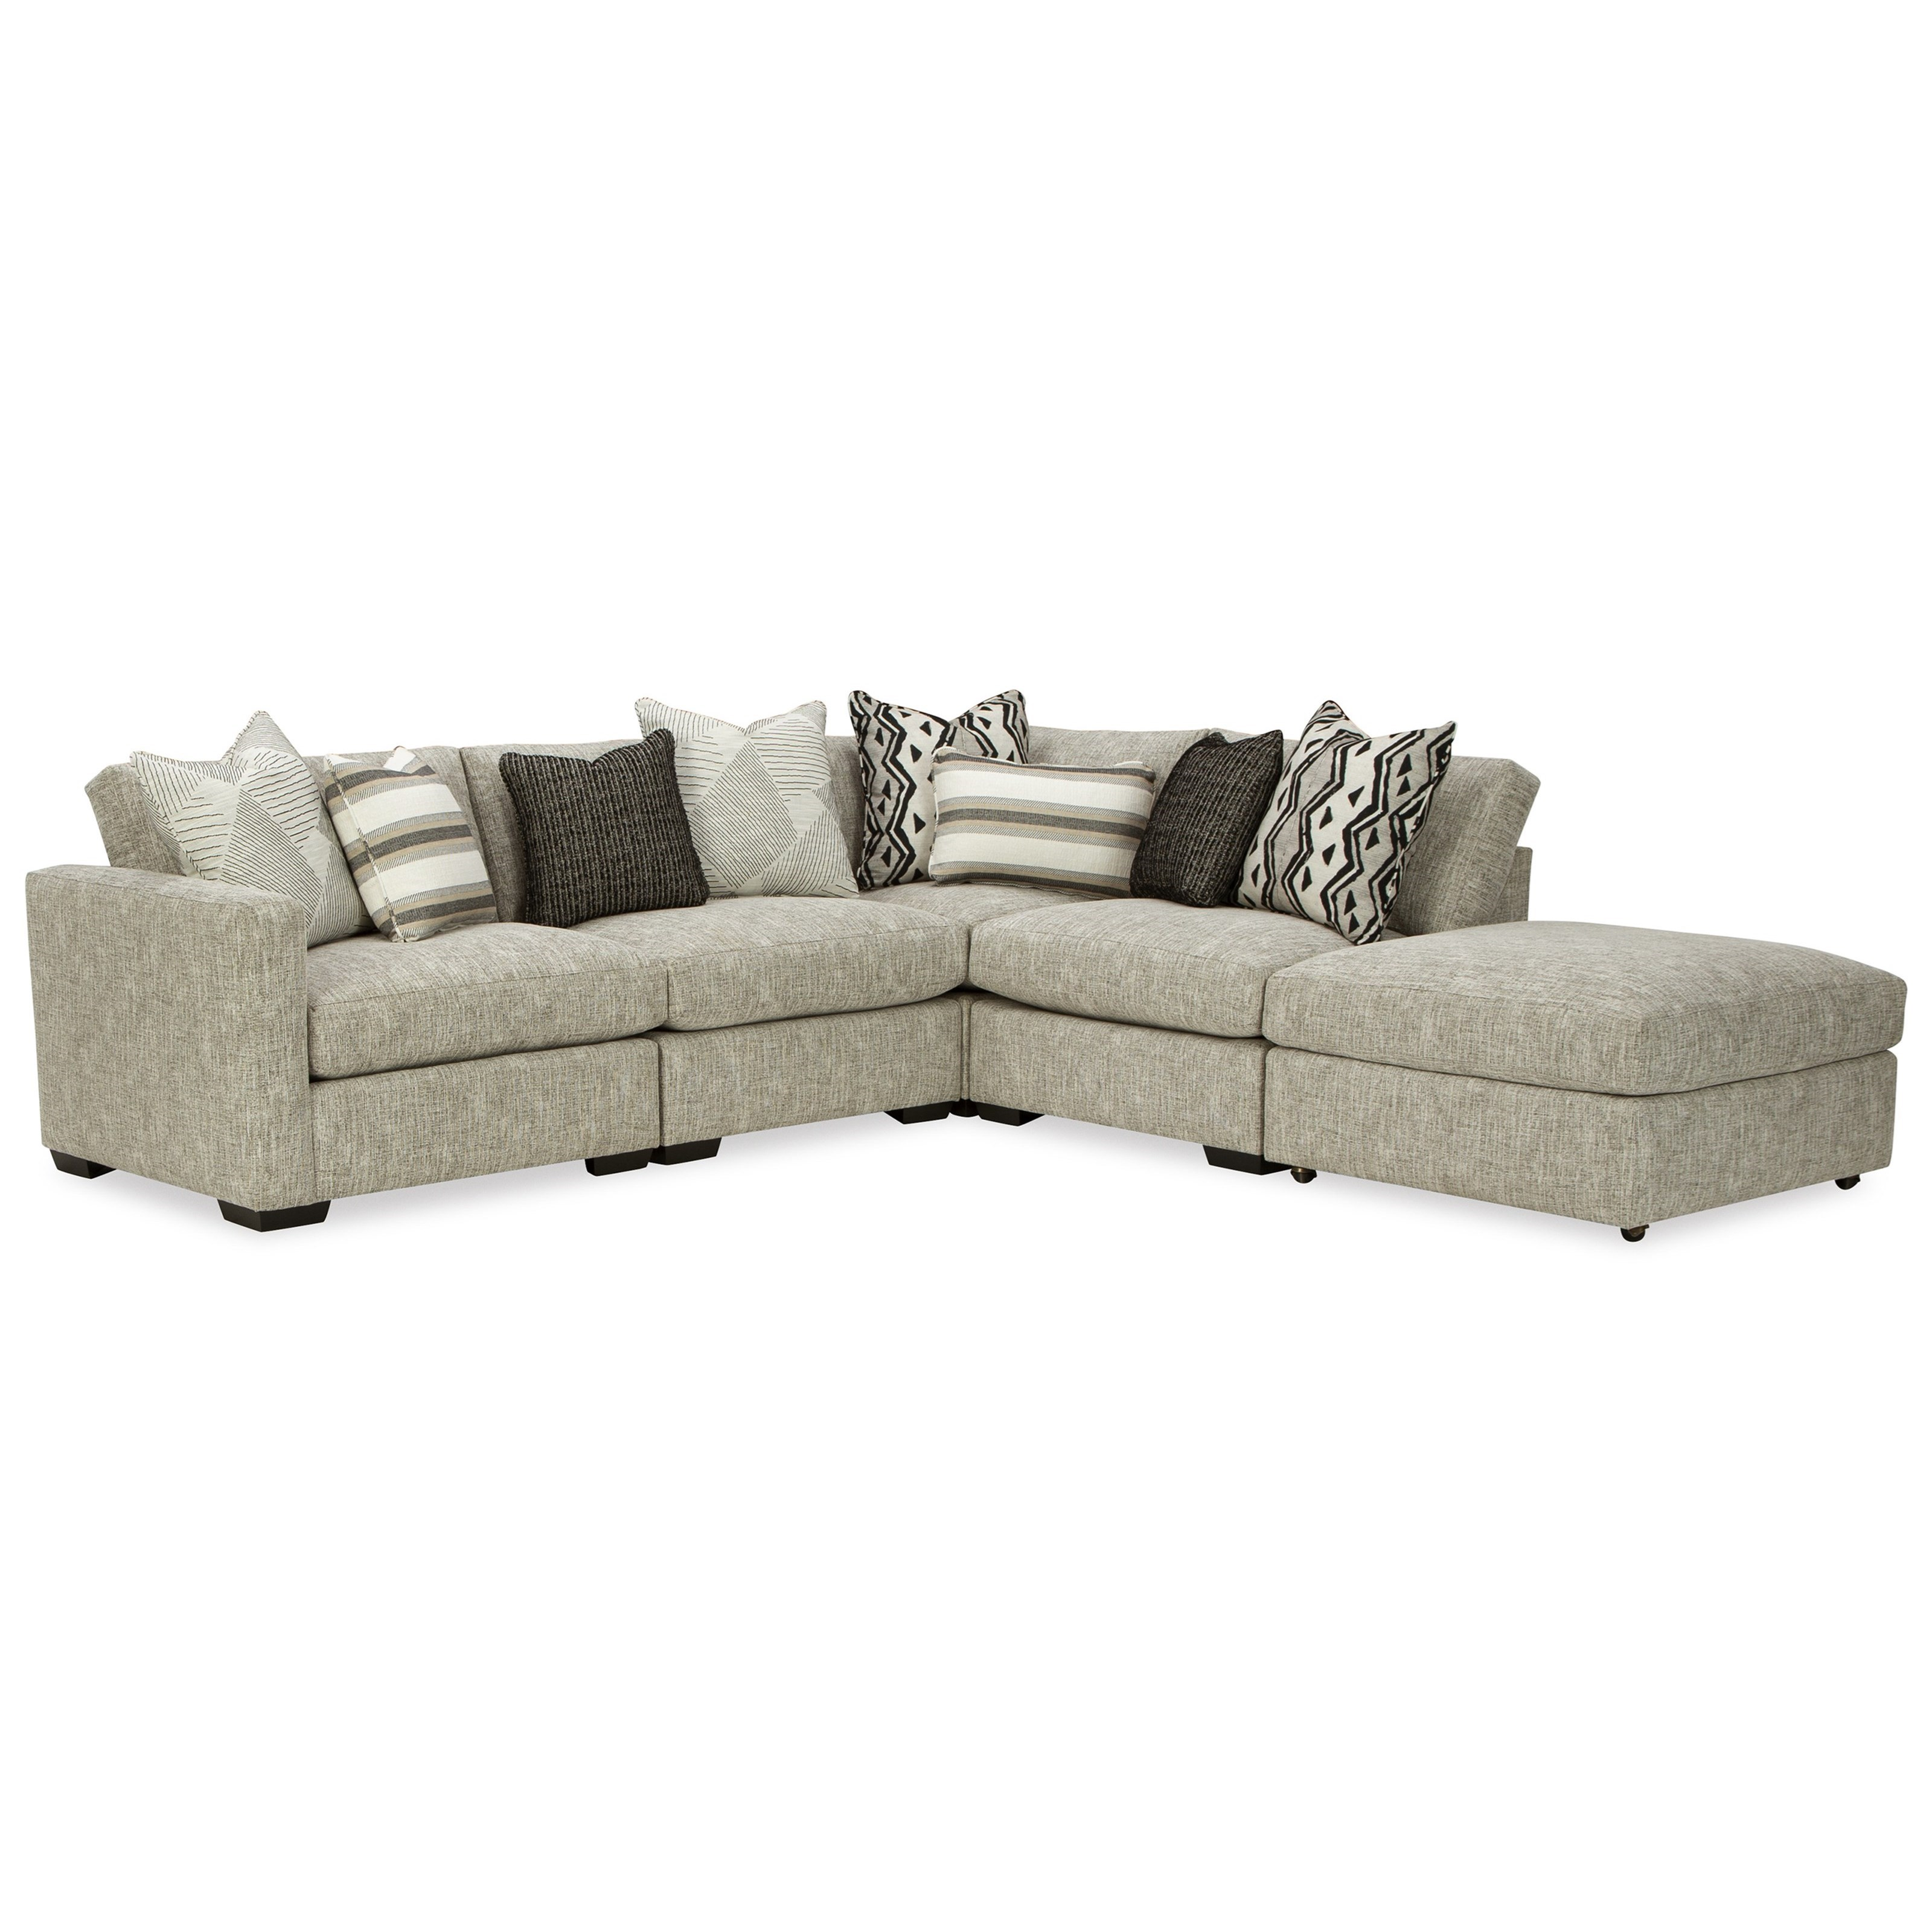 792750BD 5-Piece Sectional Sofa by Craftmaster at Baer's Furniture